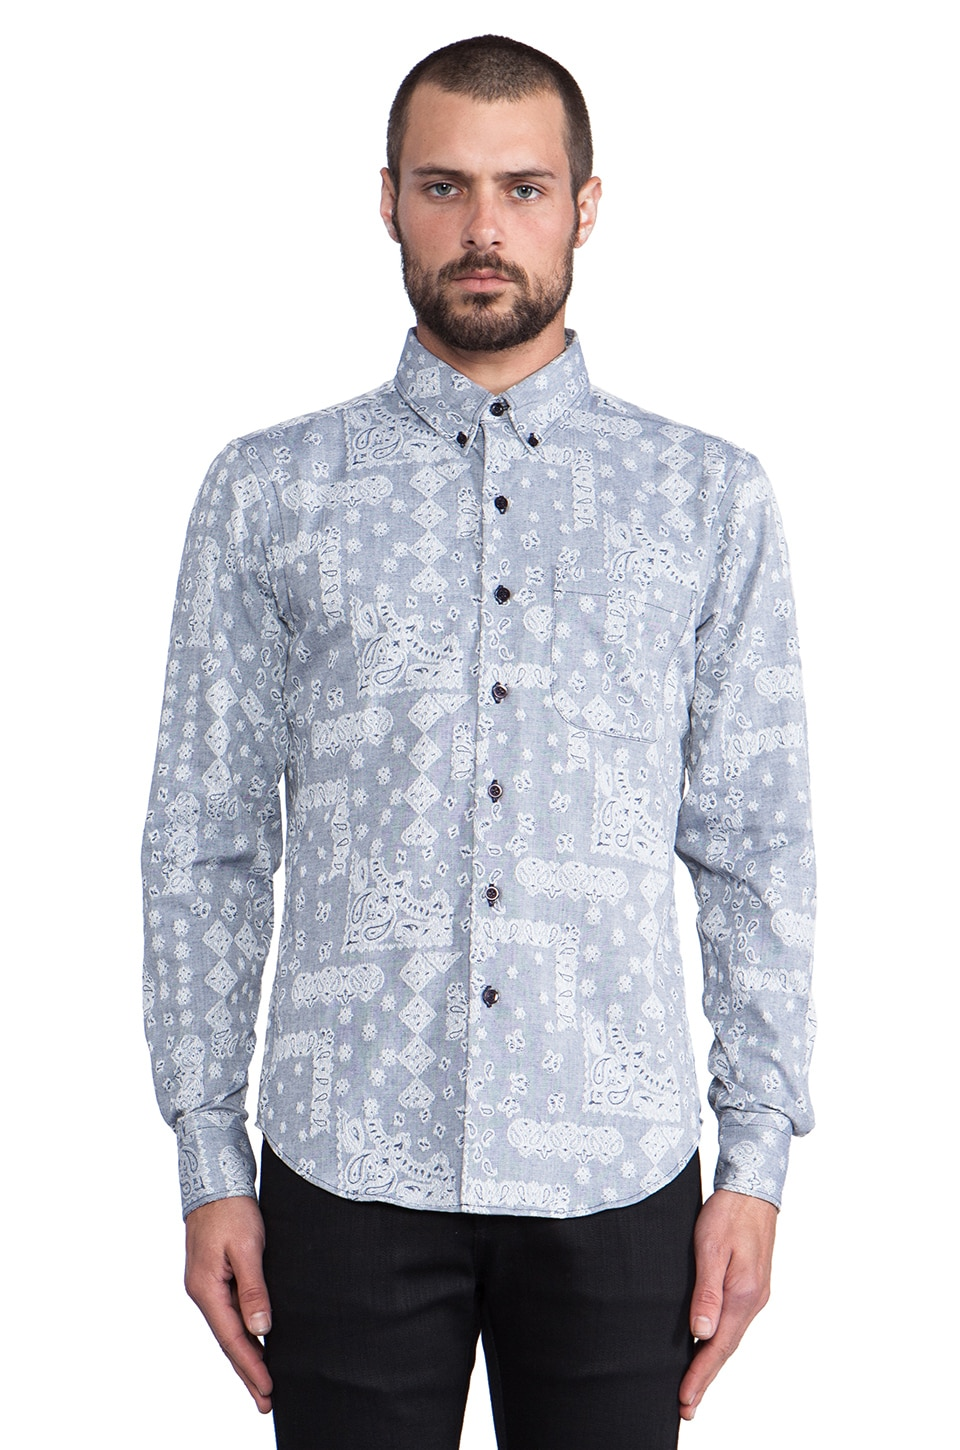 Naked & Famous Denim Slim Shirt Paisley Jacquard in White/Navy